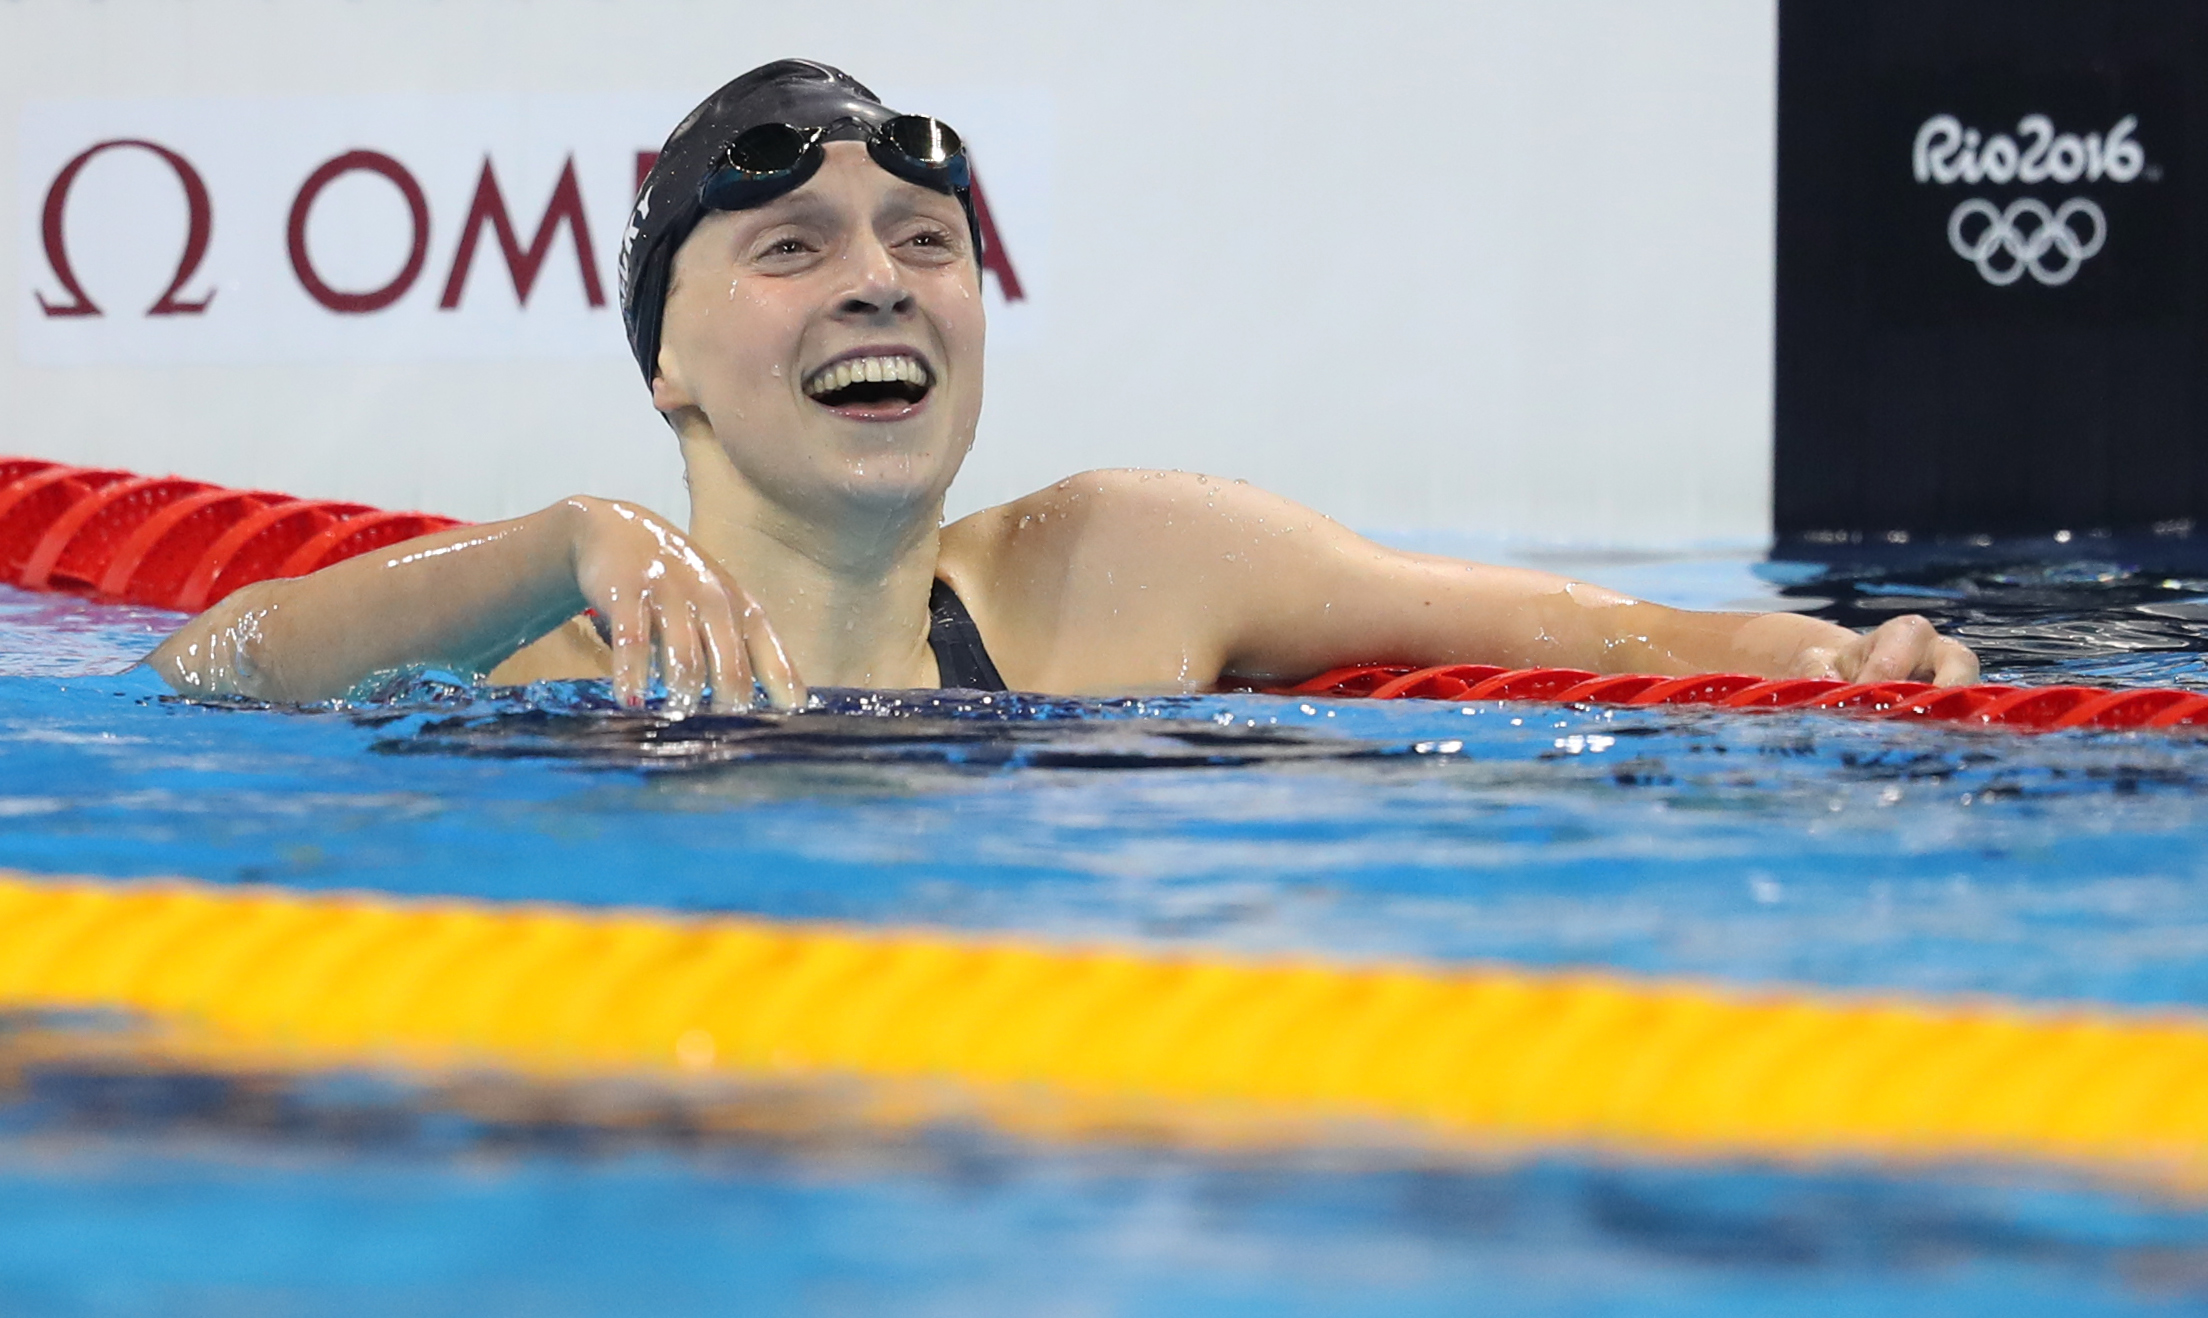 US Olympic swimmer Katie Ledecky celebrates winning a thrilling Women's 200m Freestyle final at the 2016 Summer Olympic Games in Rio de Janeiro, Brazil.